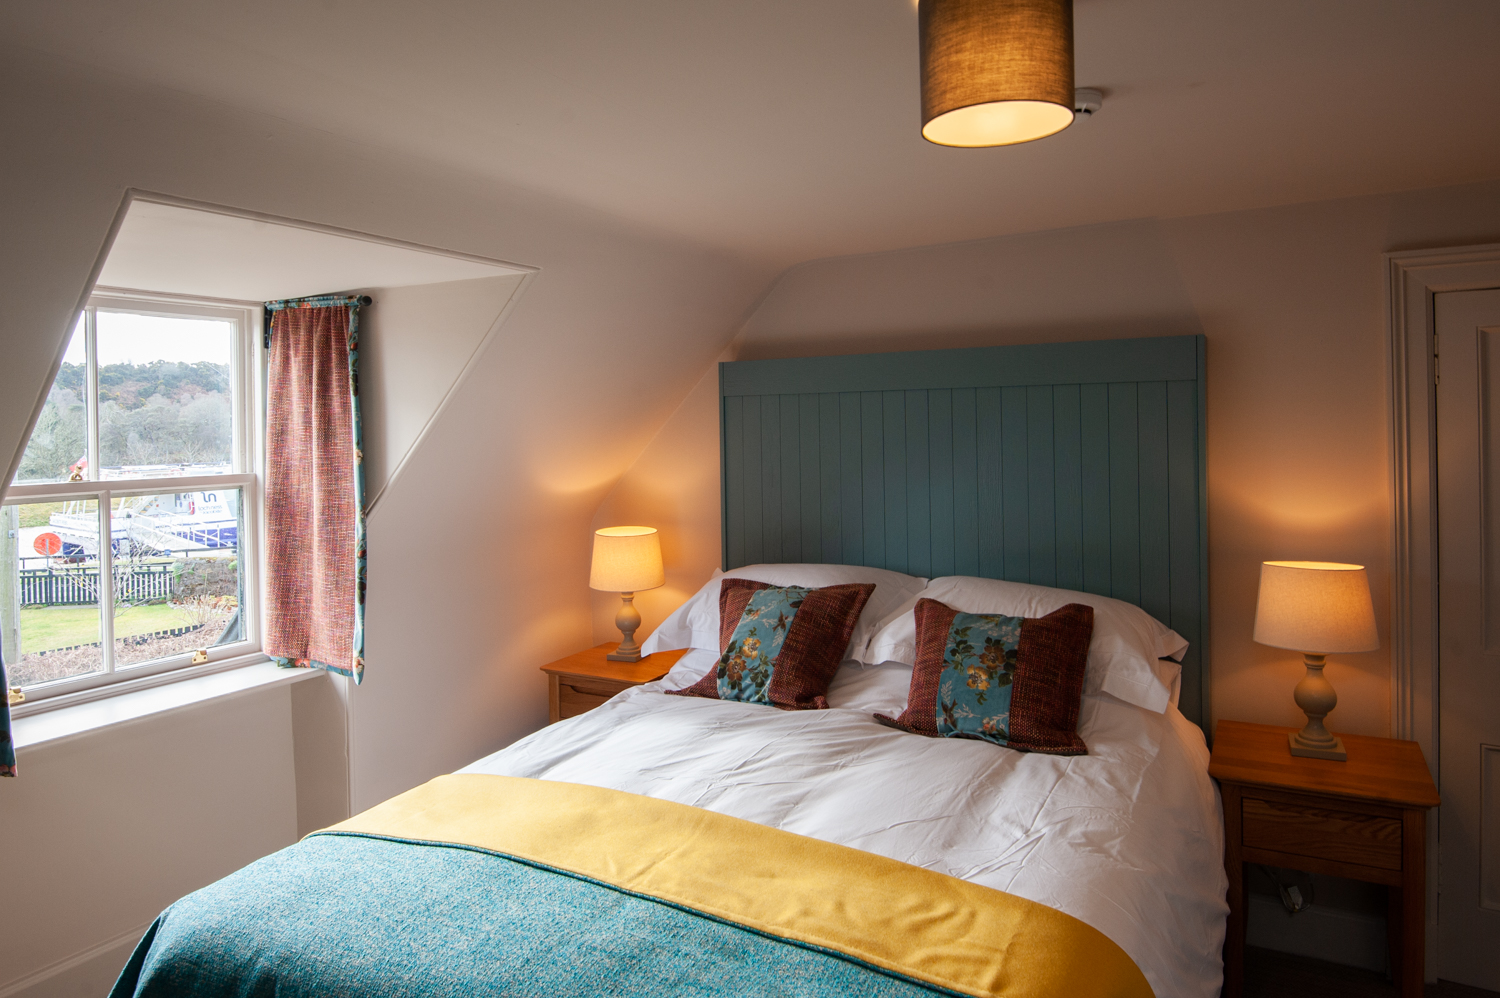 One of the bedrooms - looking out over the Caledonian Canal